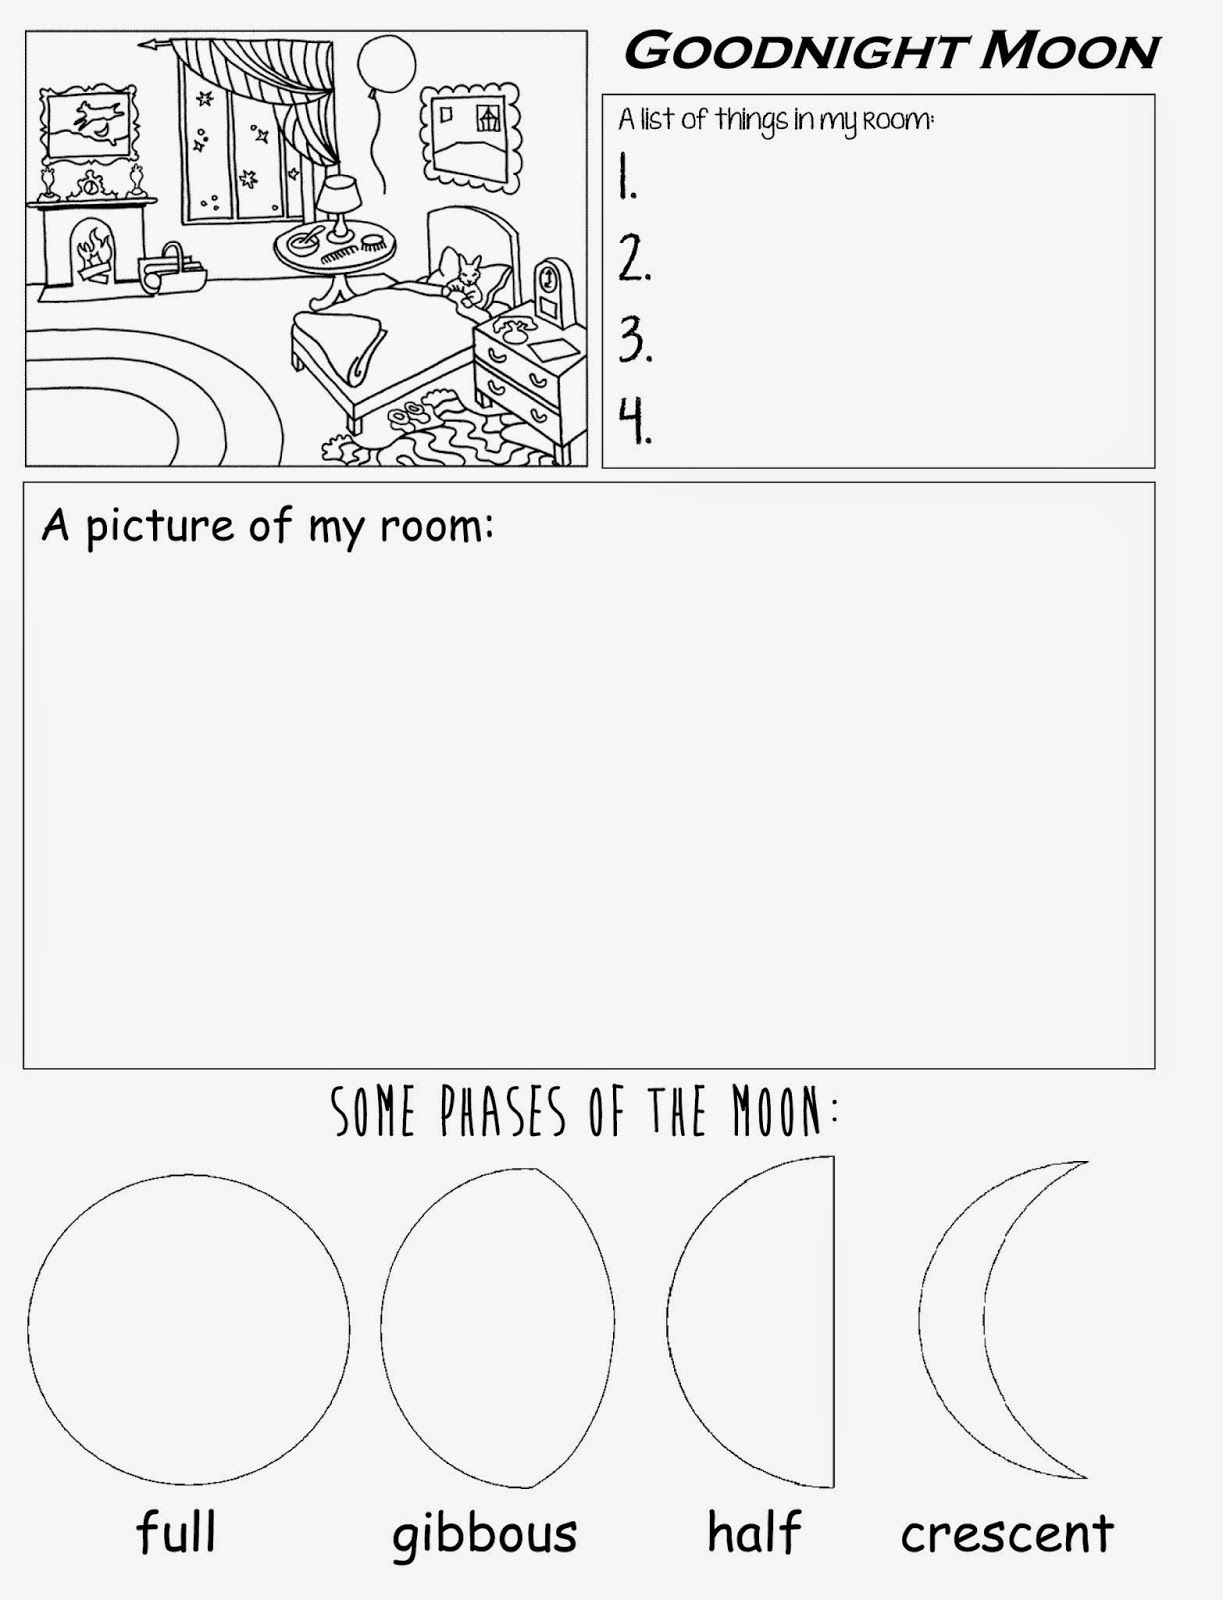 Goodnight Moon Free Printable Worksheet For Preschool Kindergarten Home School